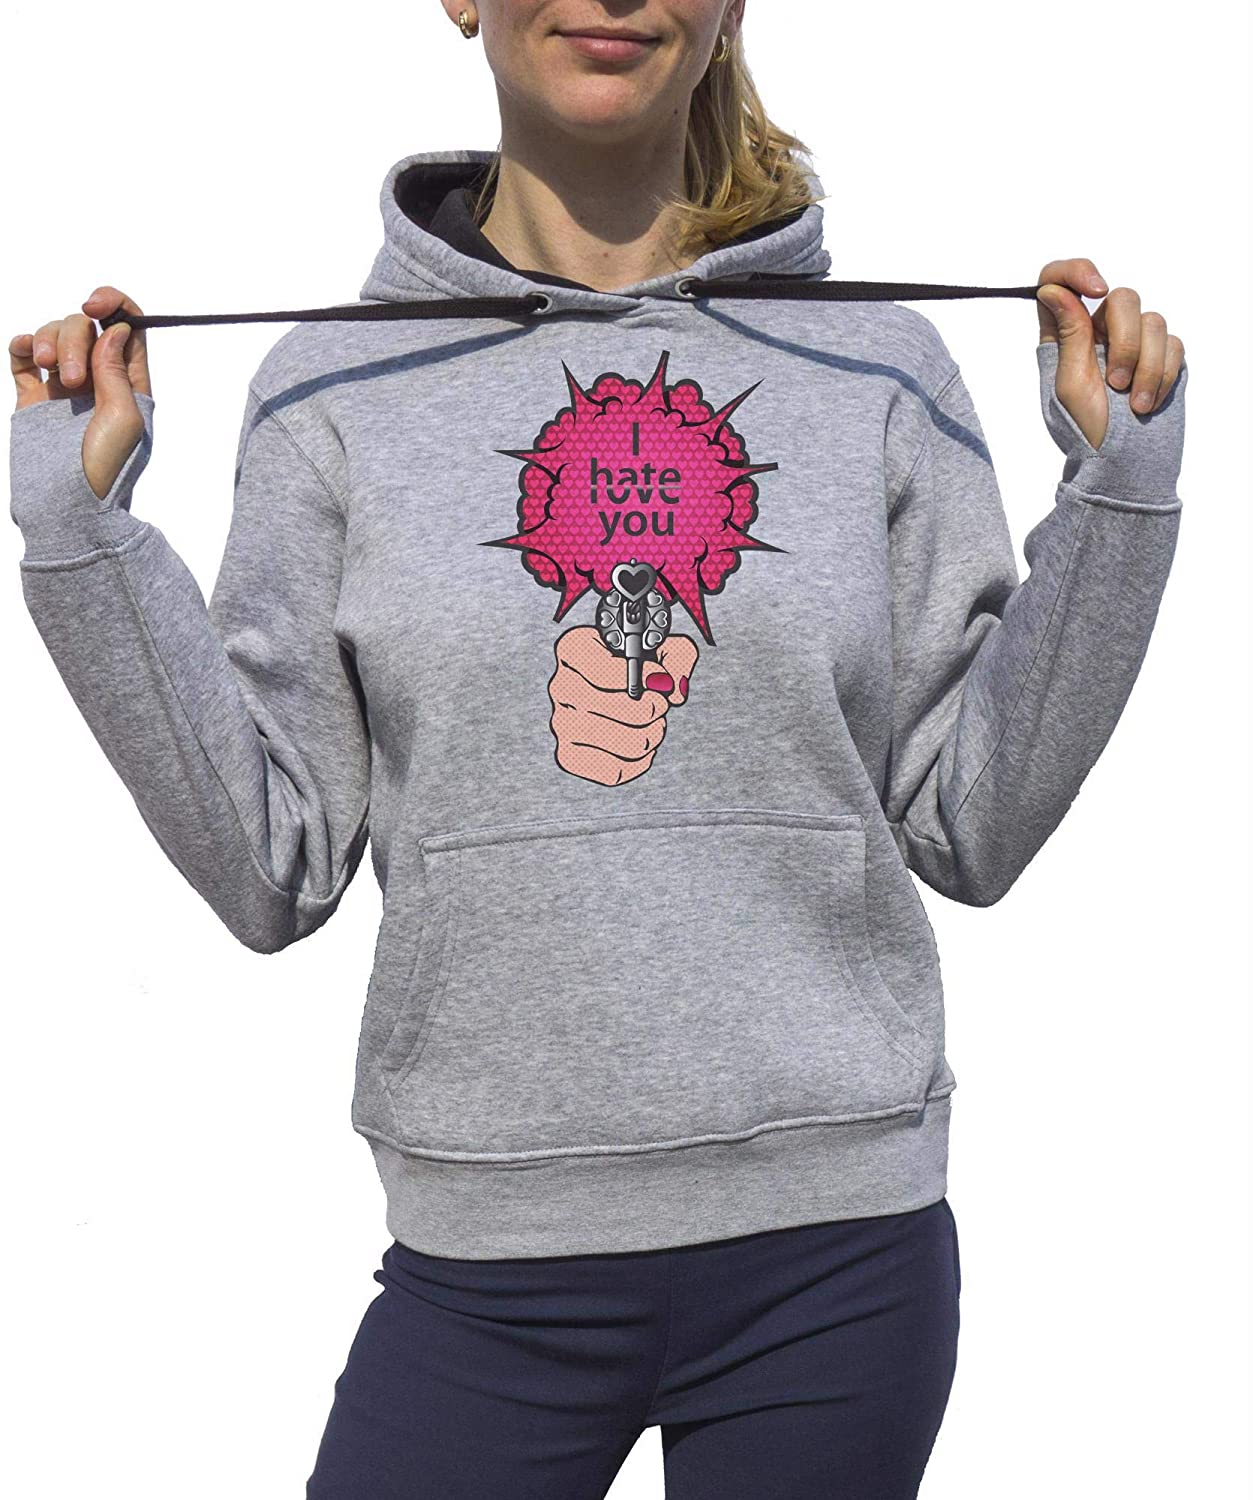 KrisTalas Sudadera con Capucha Mujer I Hate You Shot Gun Vintage Retro Style Hate and Love Crazy Urban Gris: Amazon.es: Ropa y accesorios